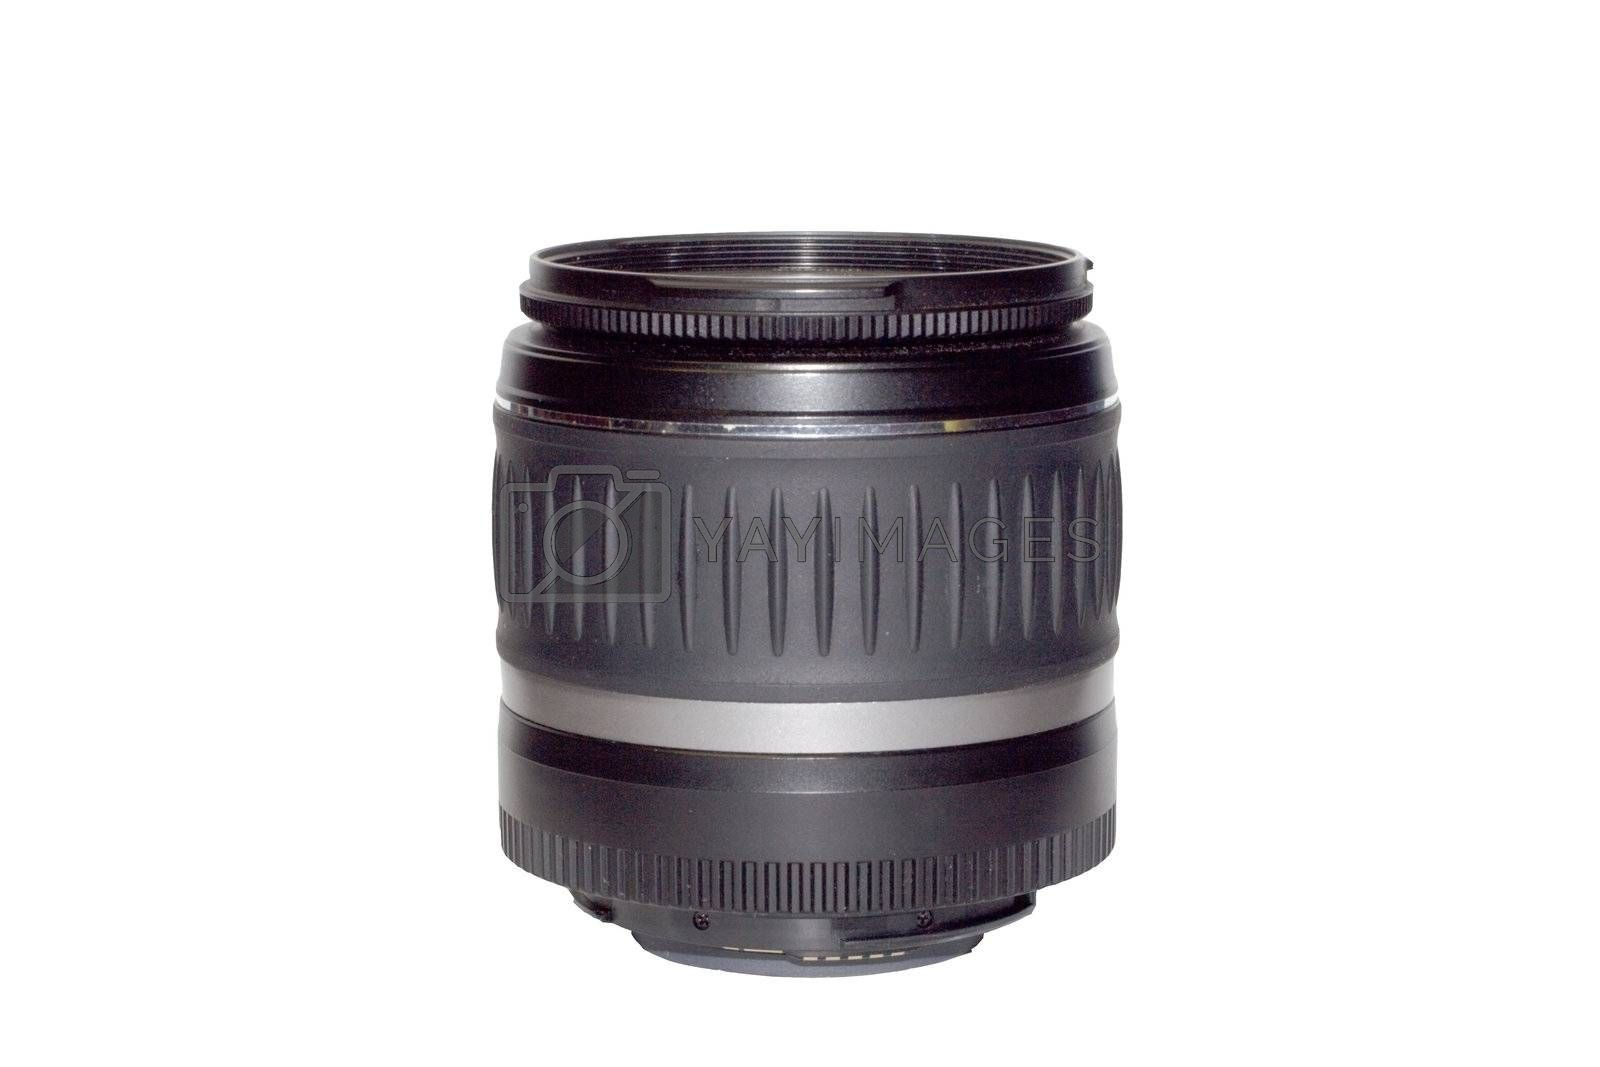 black zoom lens for camera isolated on white